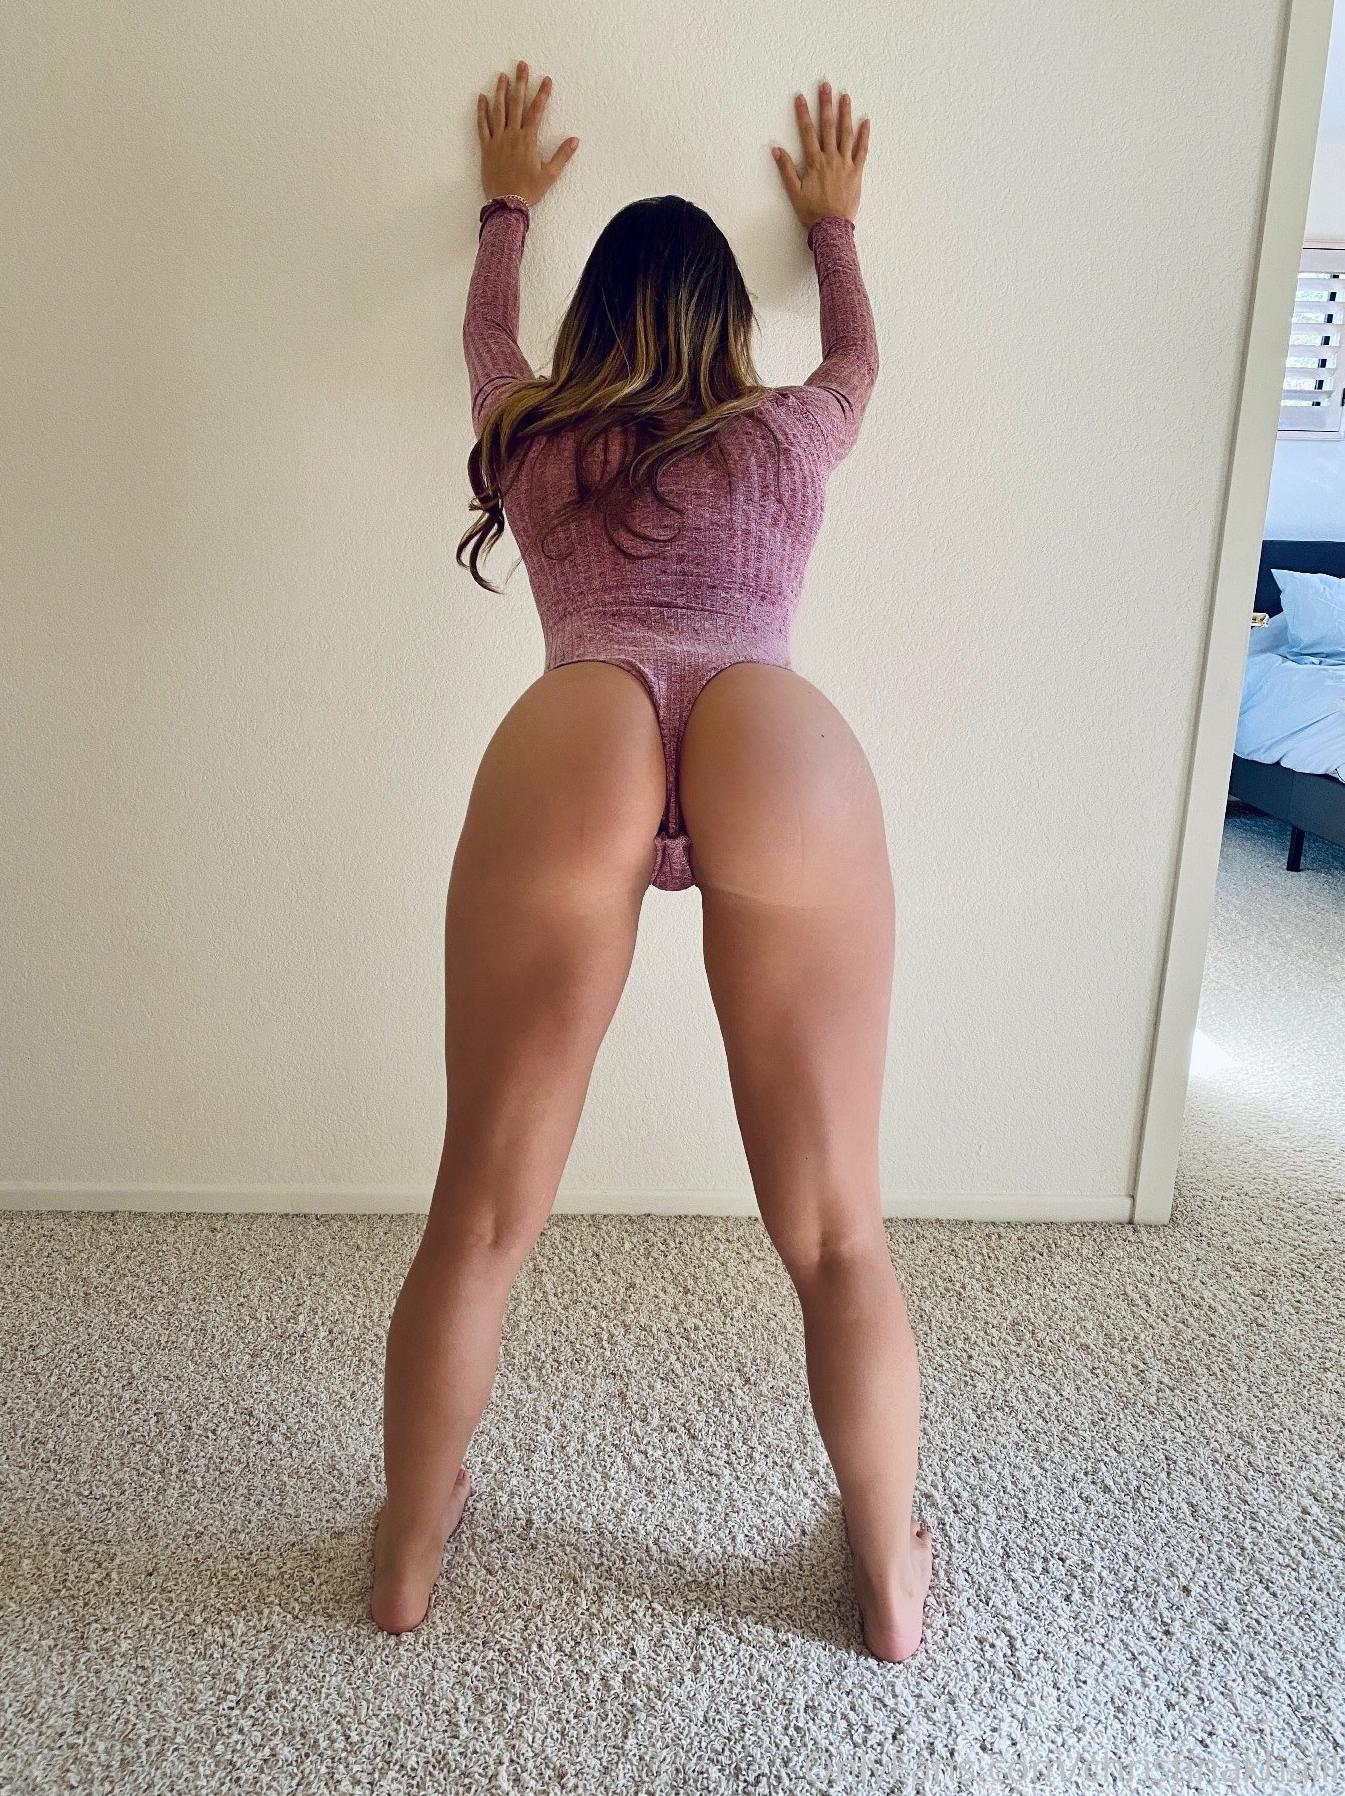 Christina Khalil Nude Onlyfans Pictures Leaked Bcqvbz